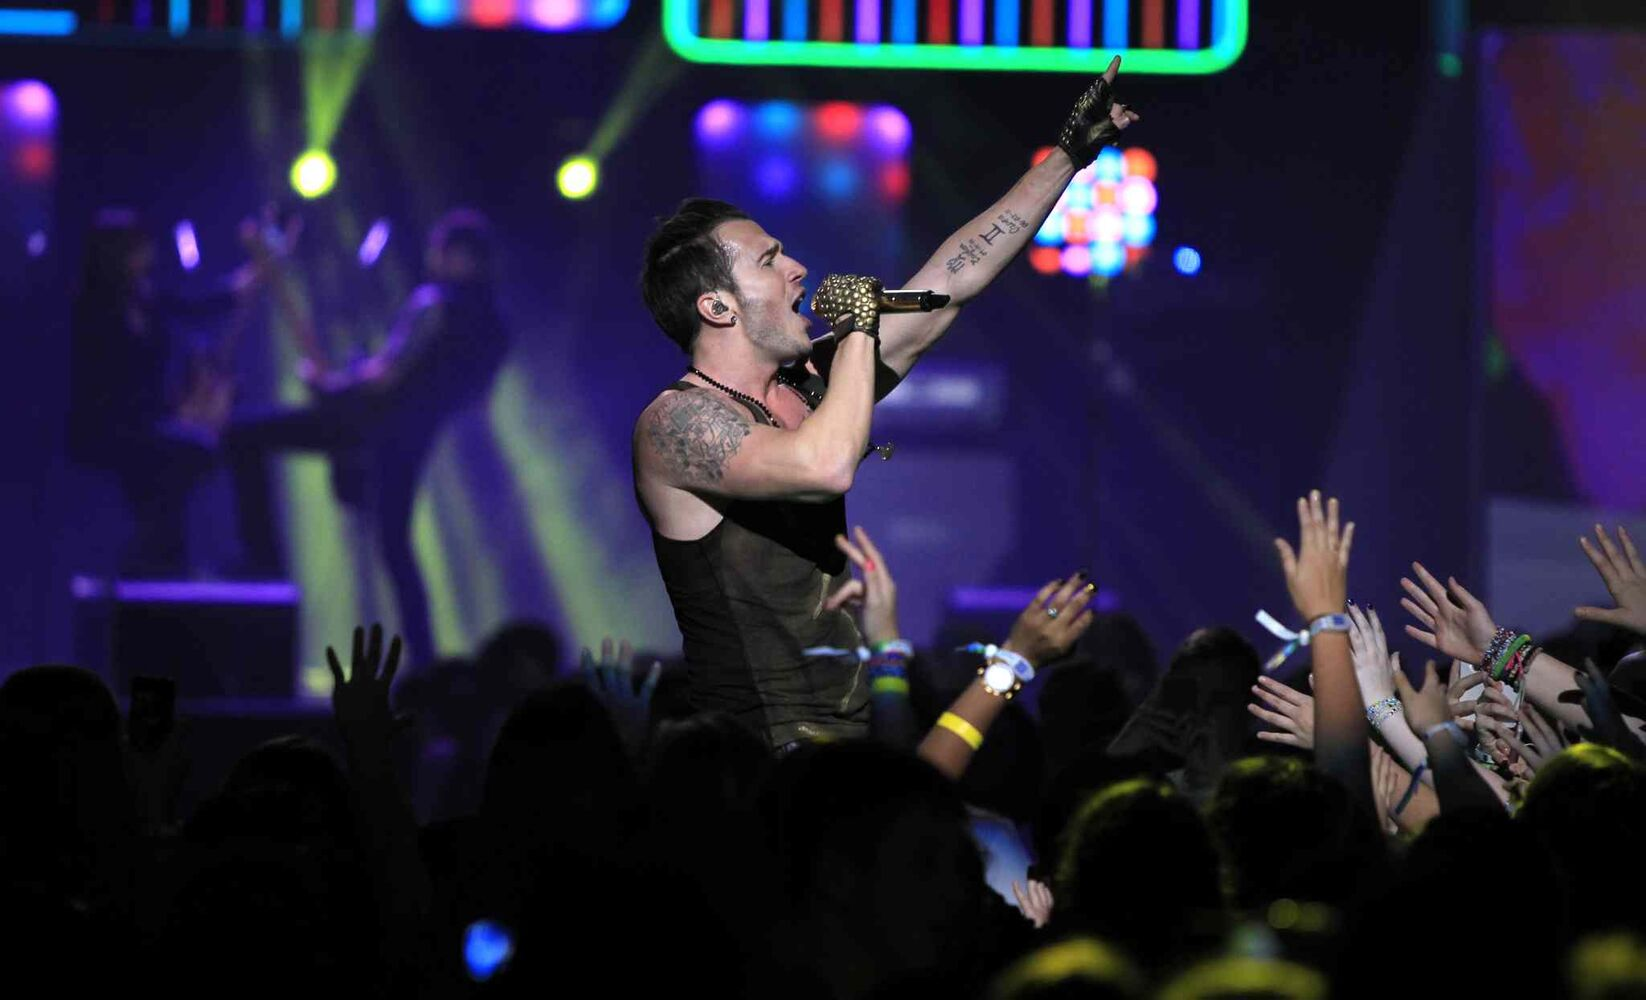 Shawn Desman sings at We Day. (Wayne Glowacki / Winnipeg Free Press)